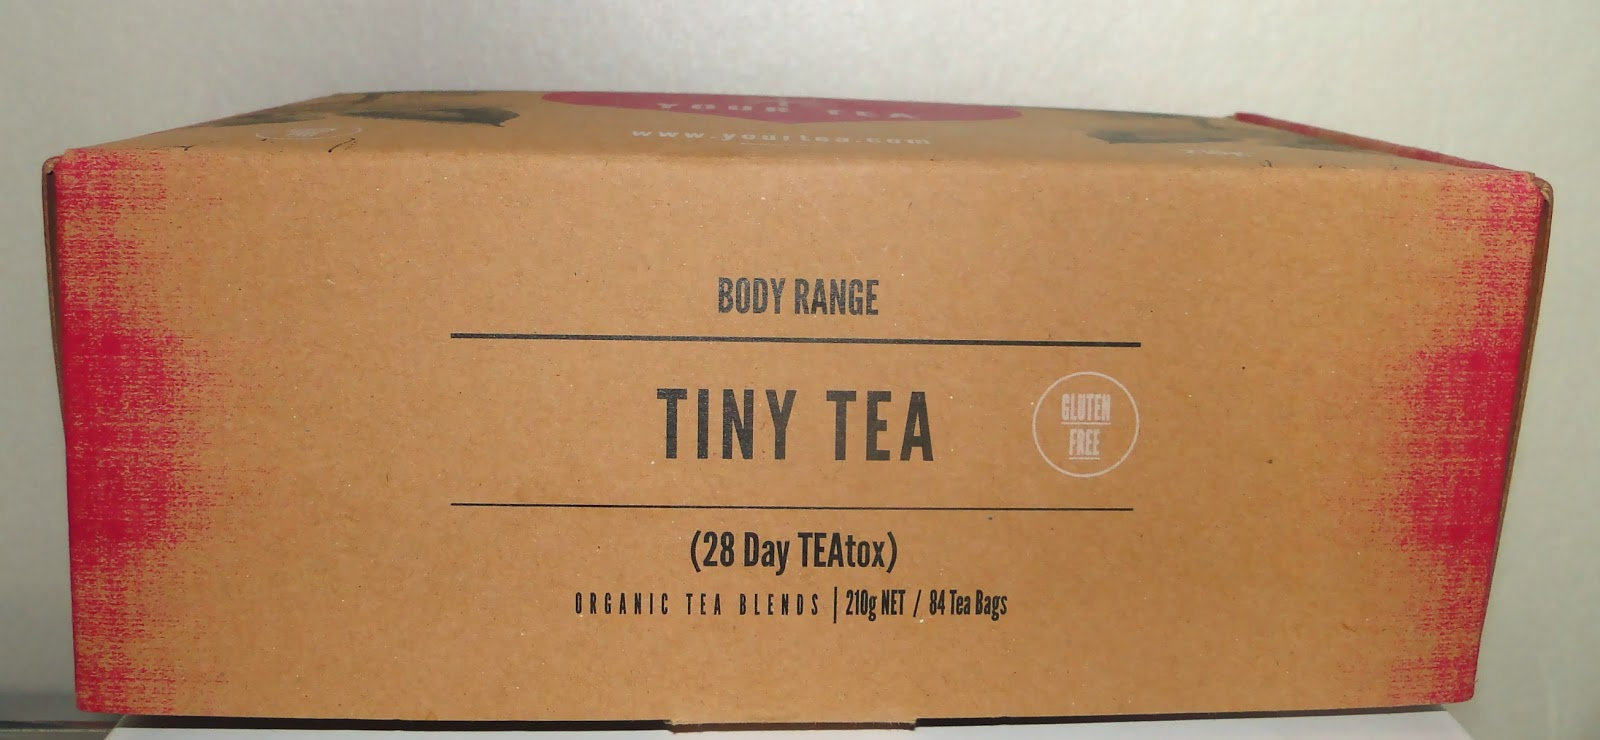 Tiny Tea, B Slim, Thé minceur, Maigrir, Your Tea, Gluten Free